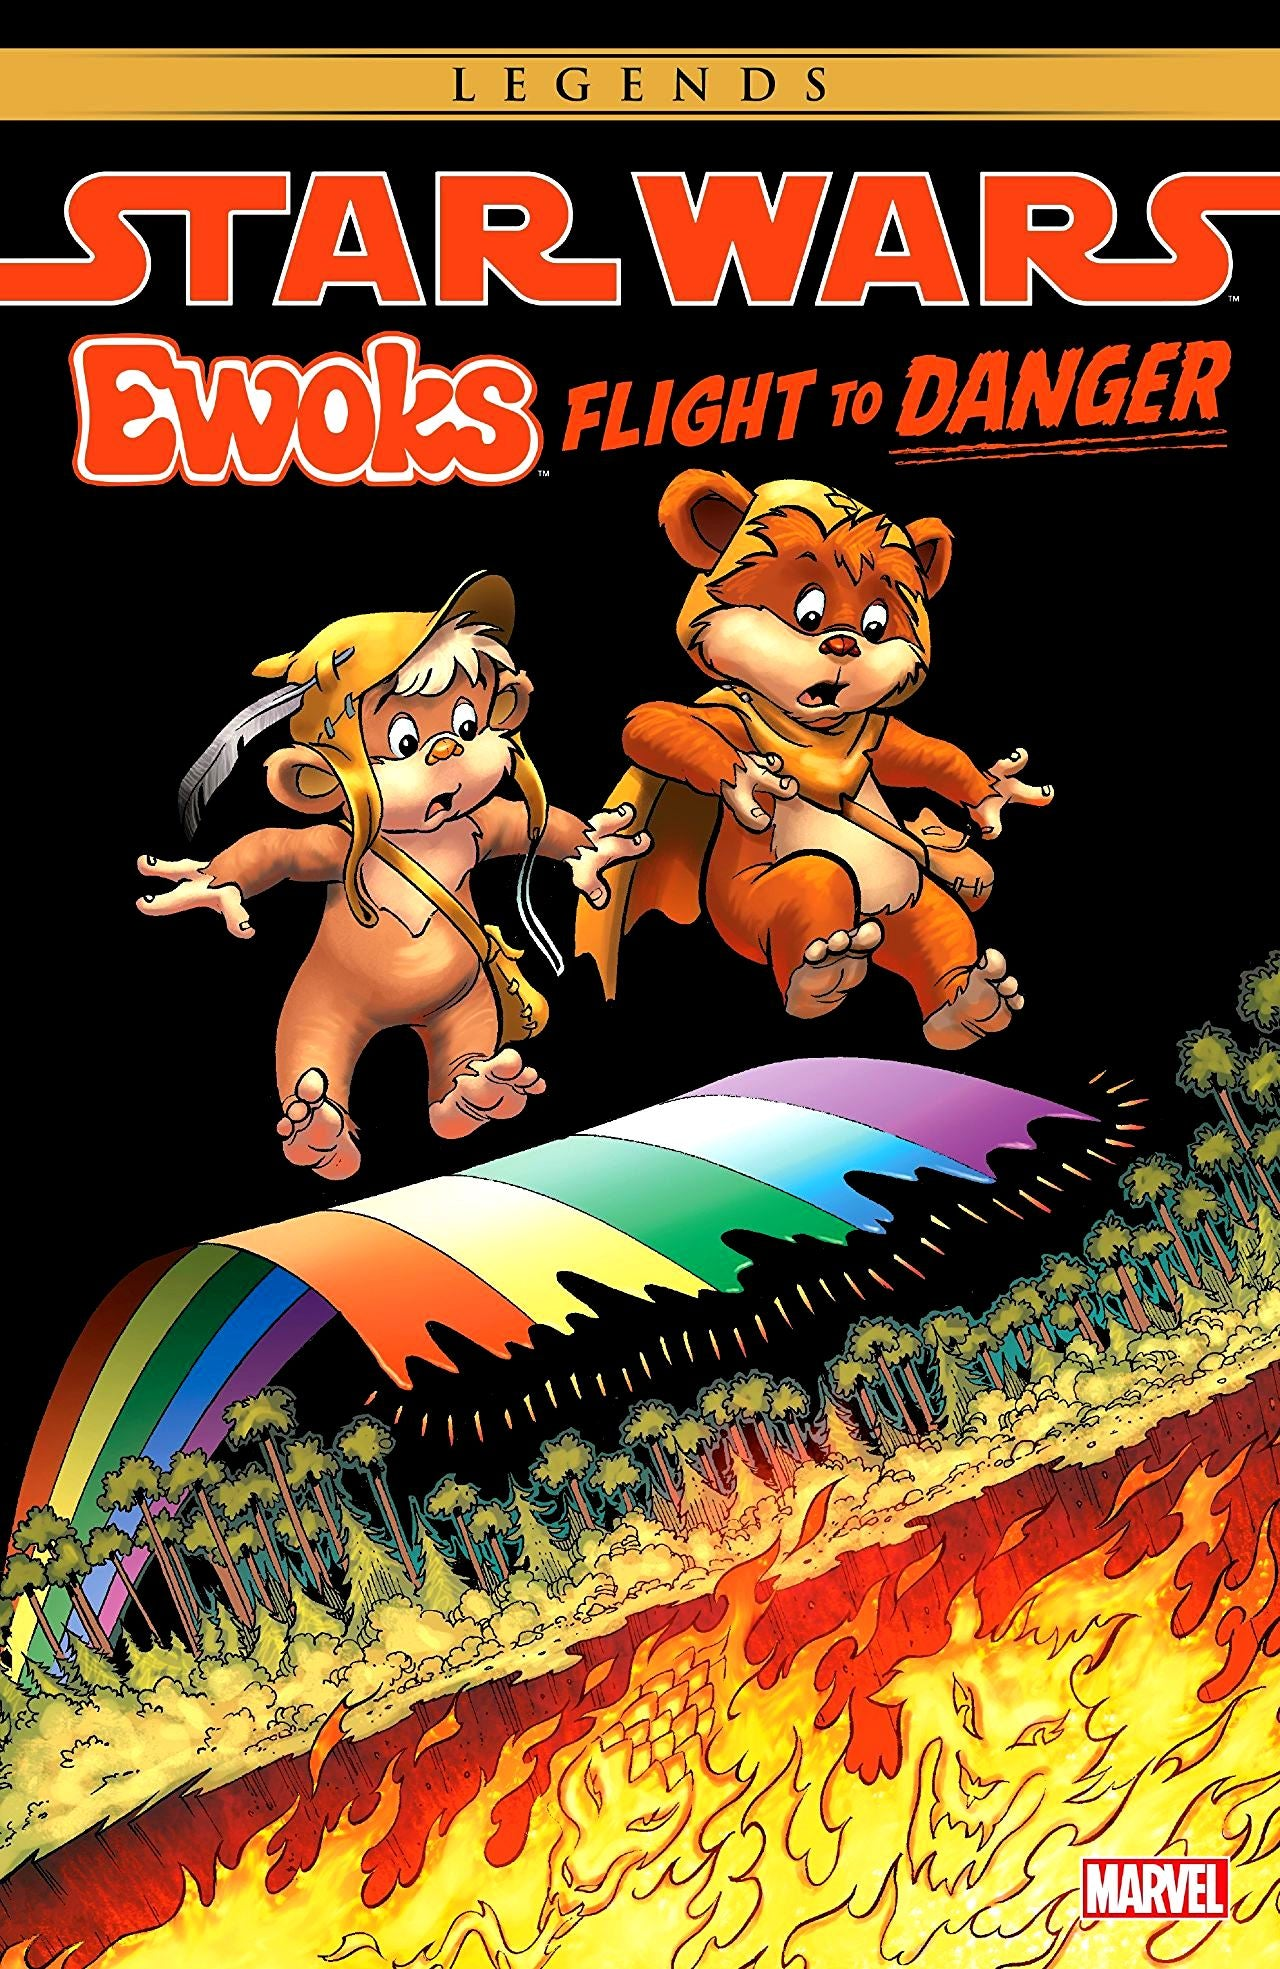 Star Wars: Ewoks - Flight to Danger